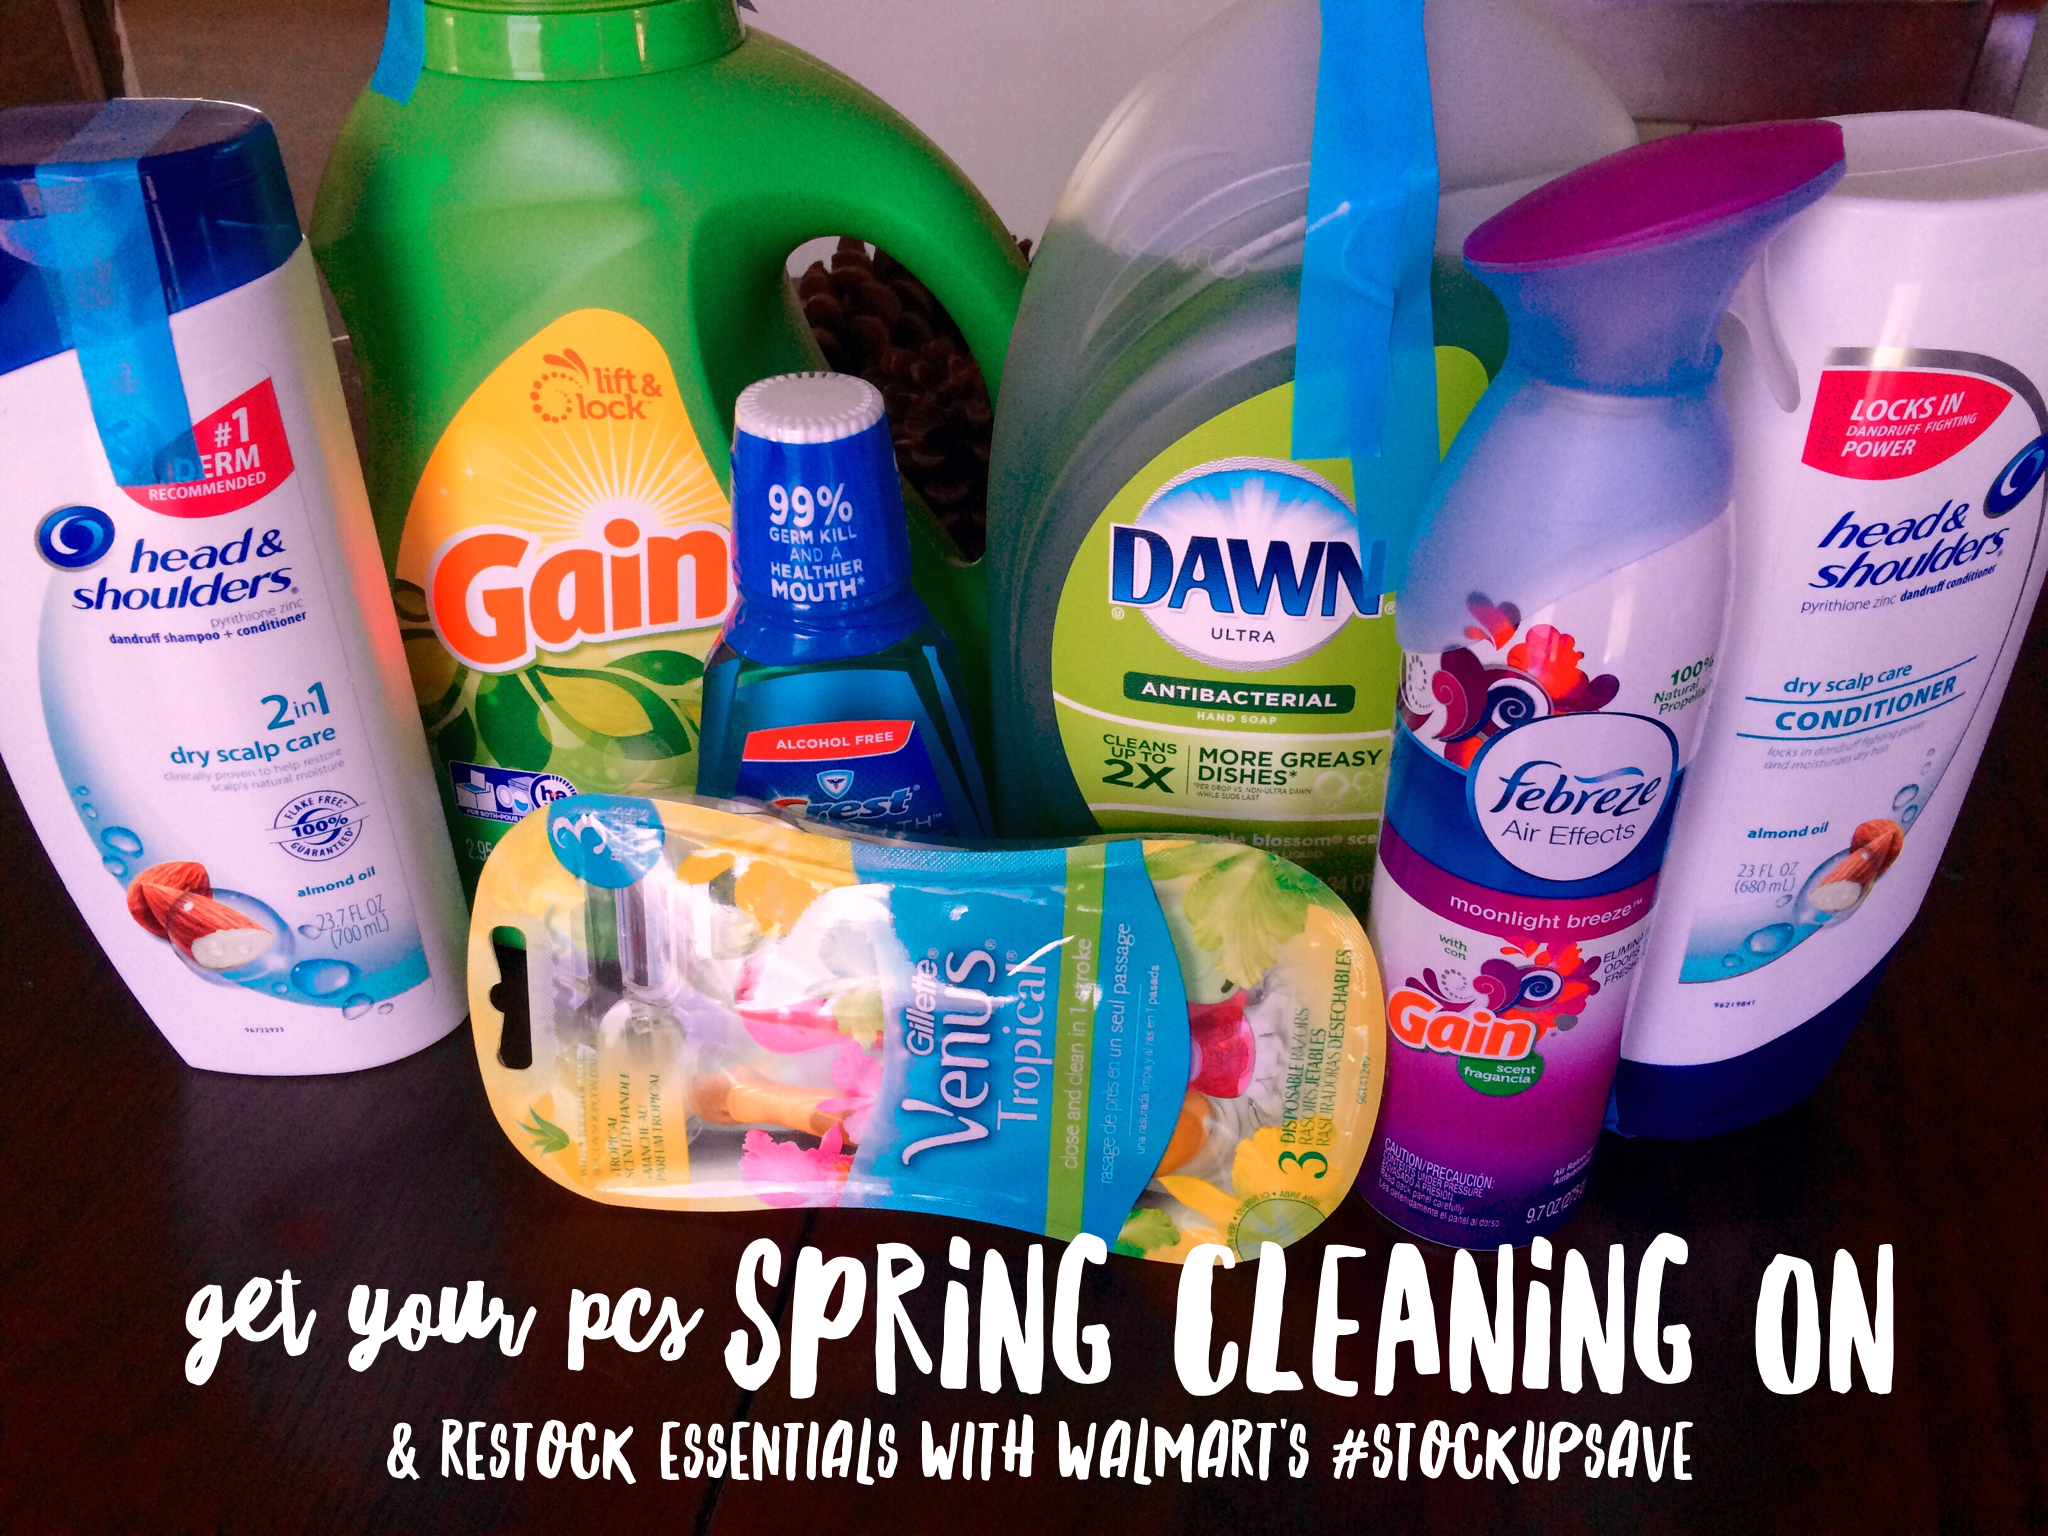 Get Your PCS Spring Cleaning On & Restock Essentials With Walmart's #StockUpSave